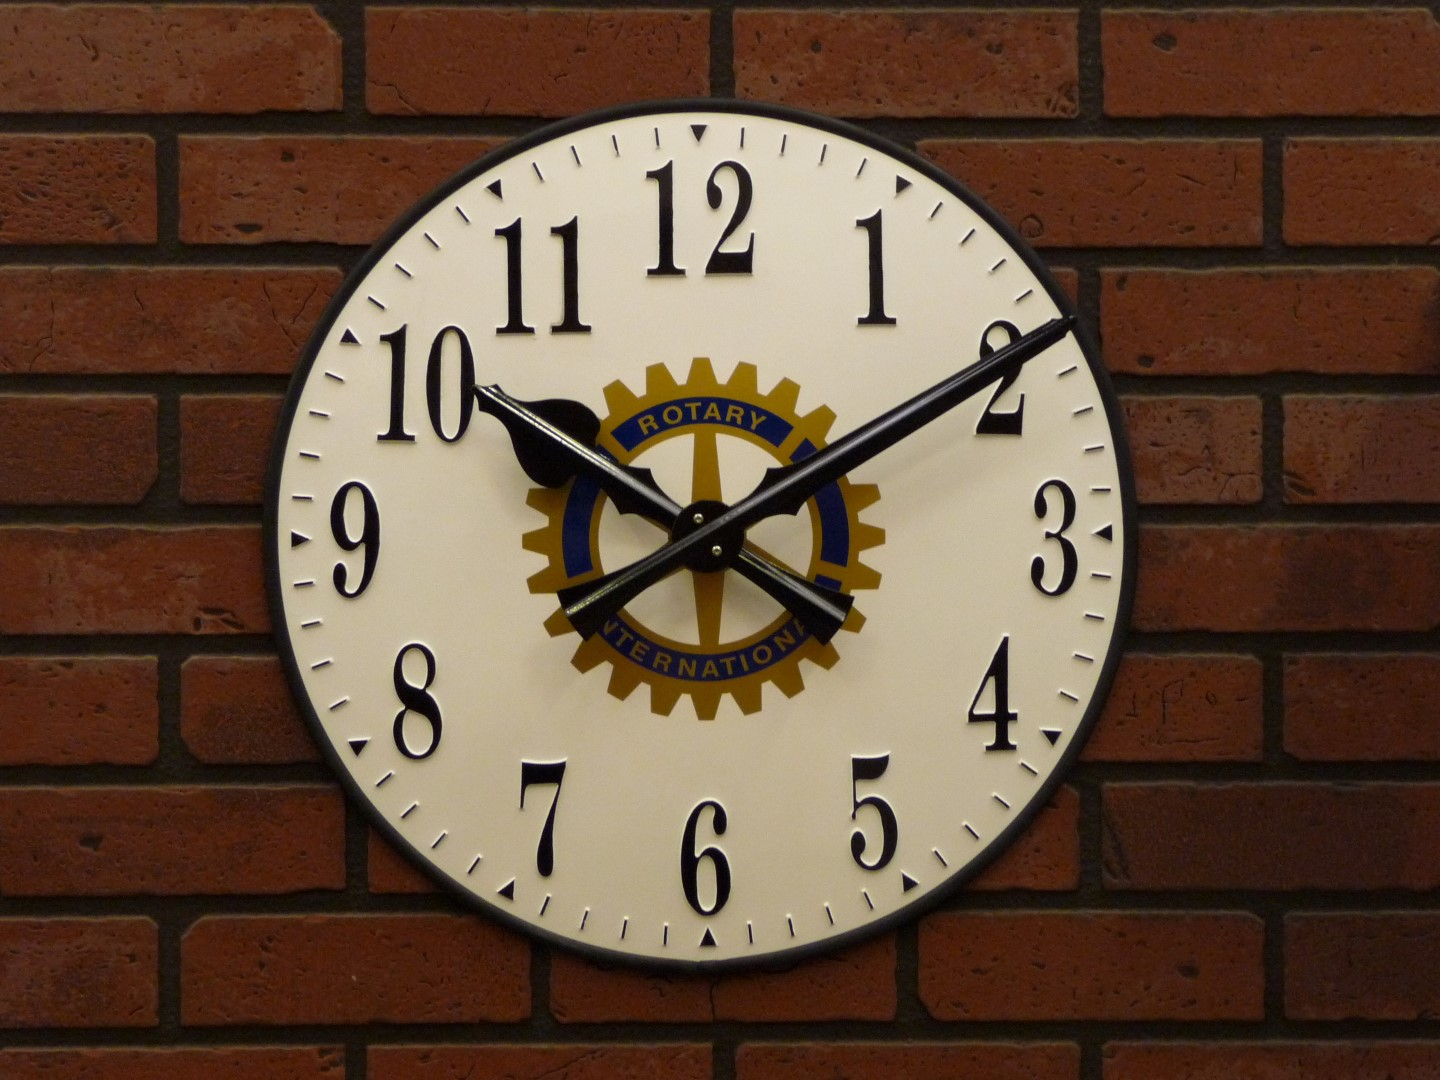 Clock with Rotary logo